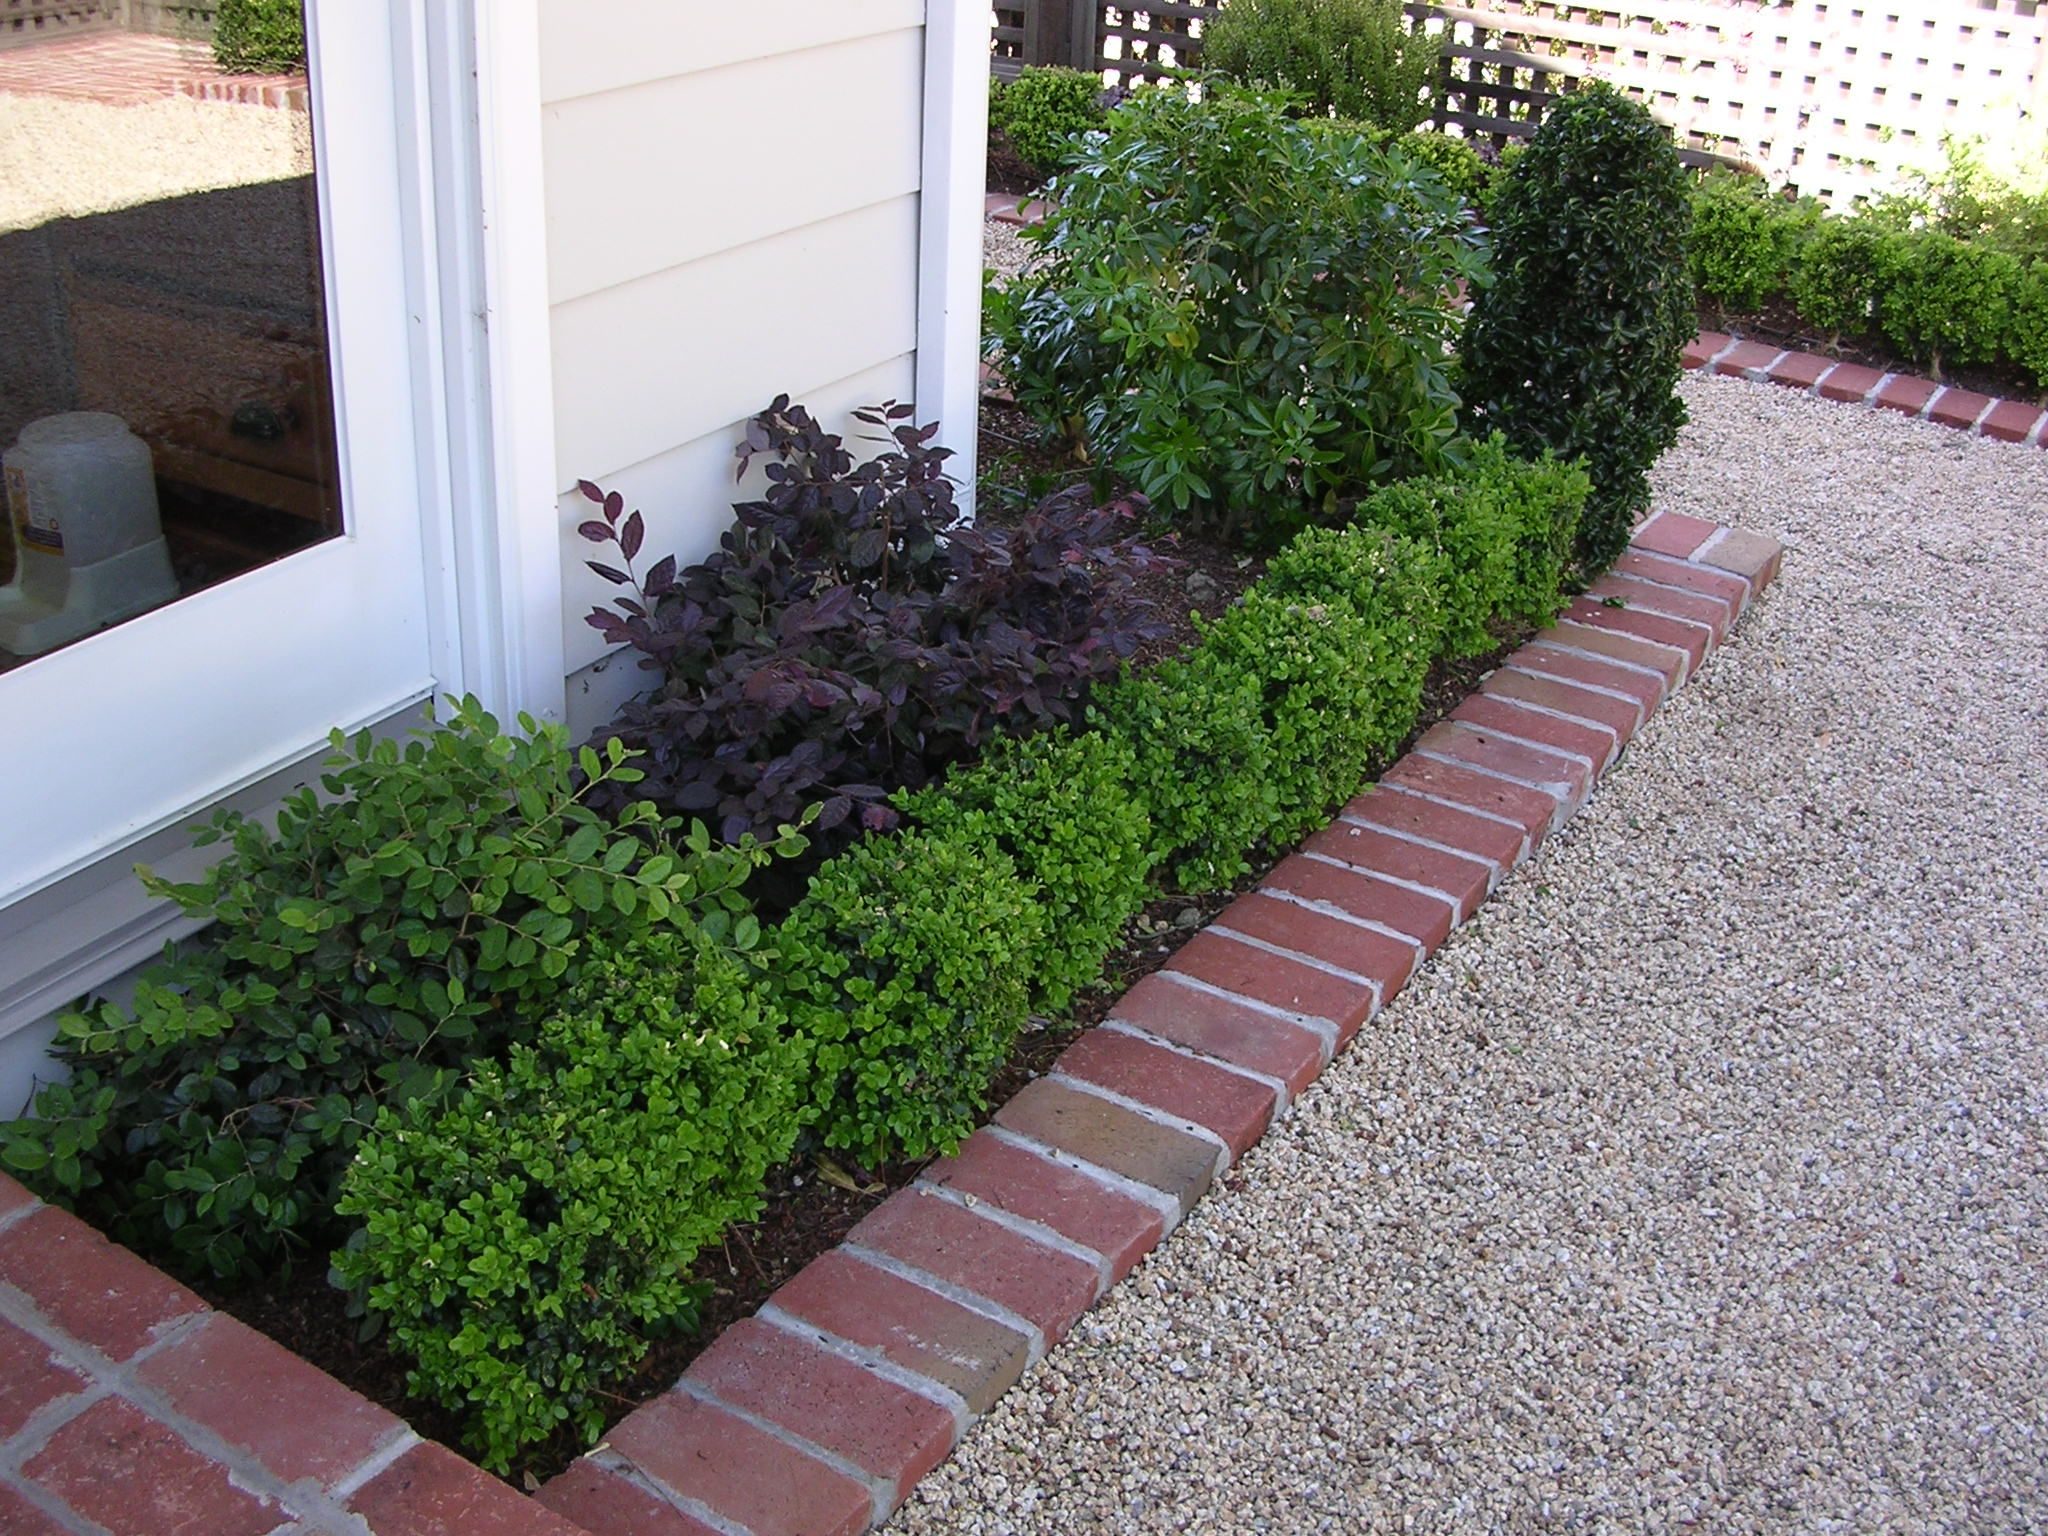 Boxwood brick gravel edge mike 39 s recent projects for Gravel path edging ideas